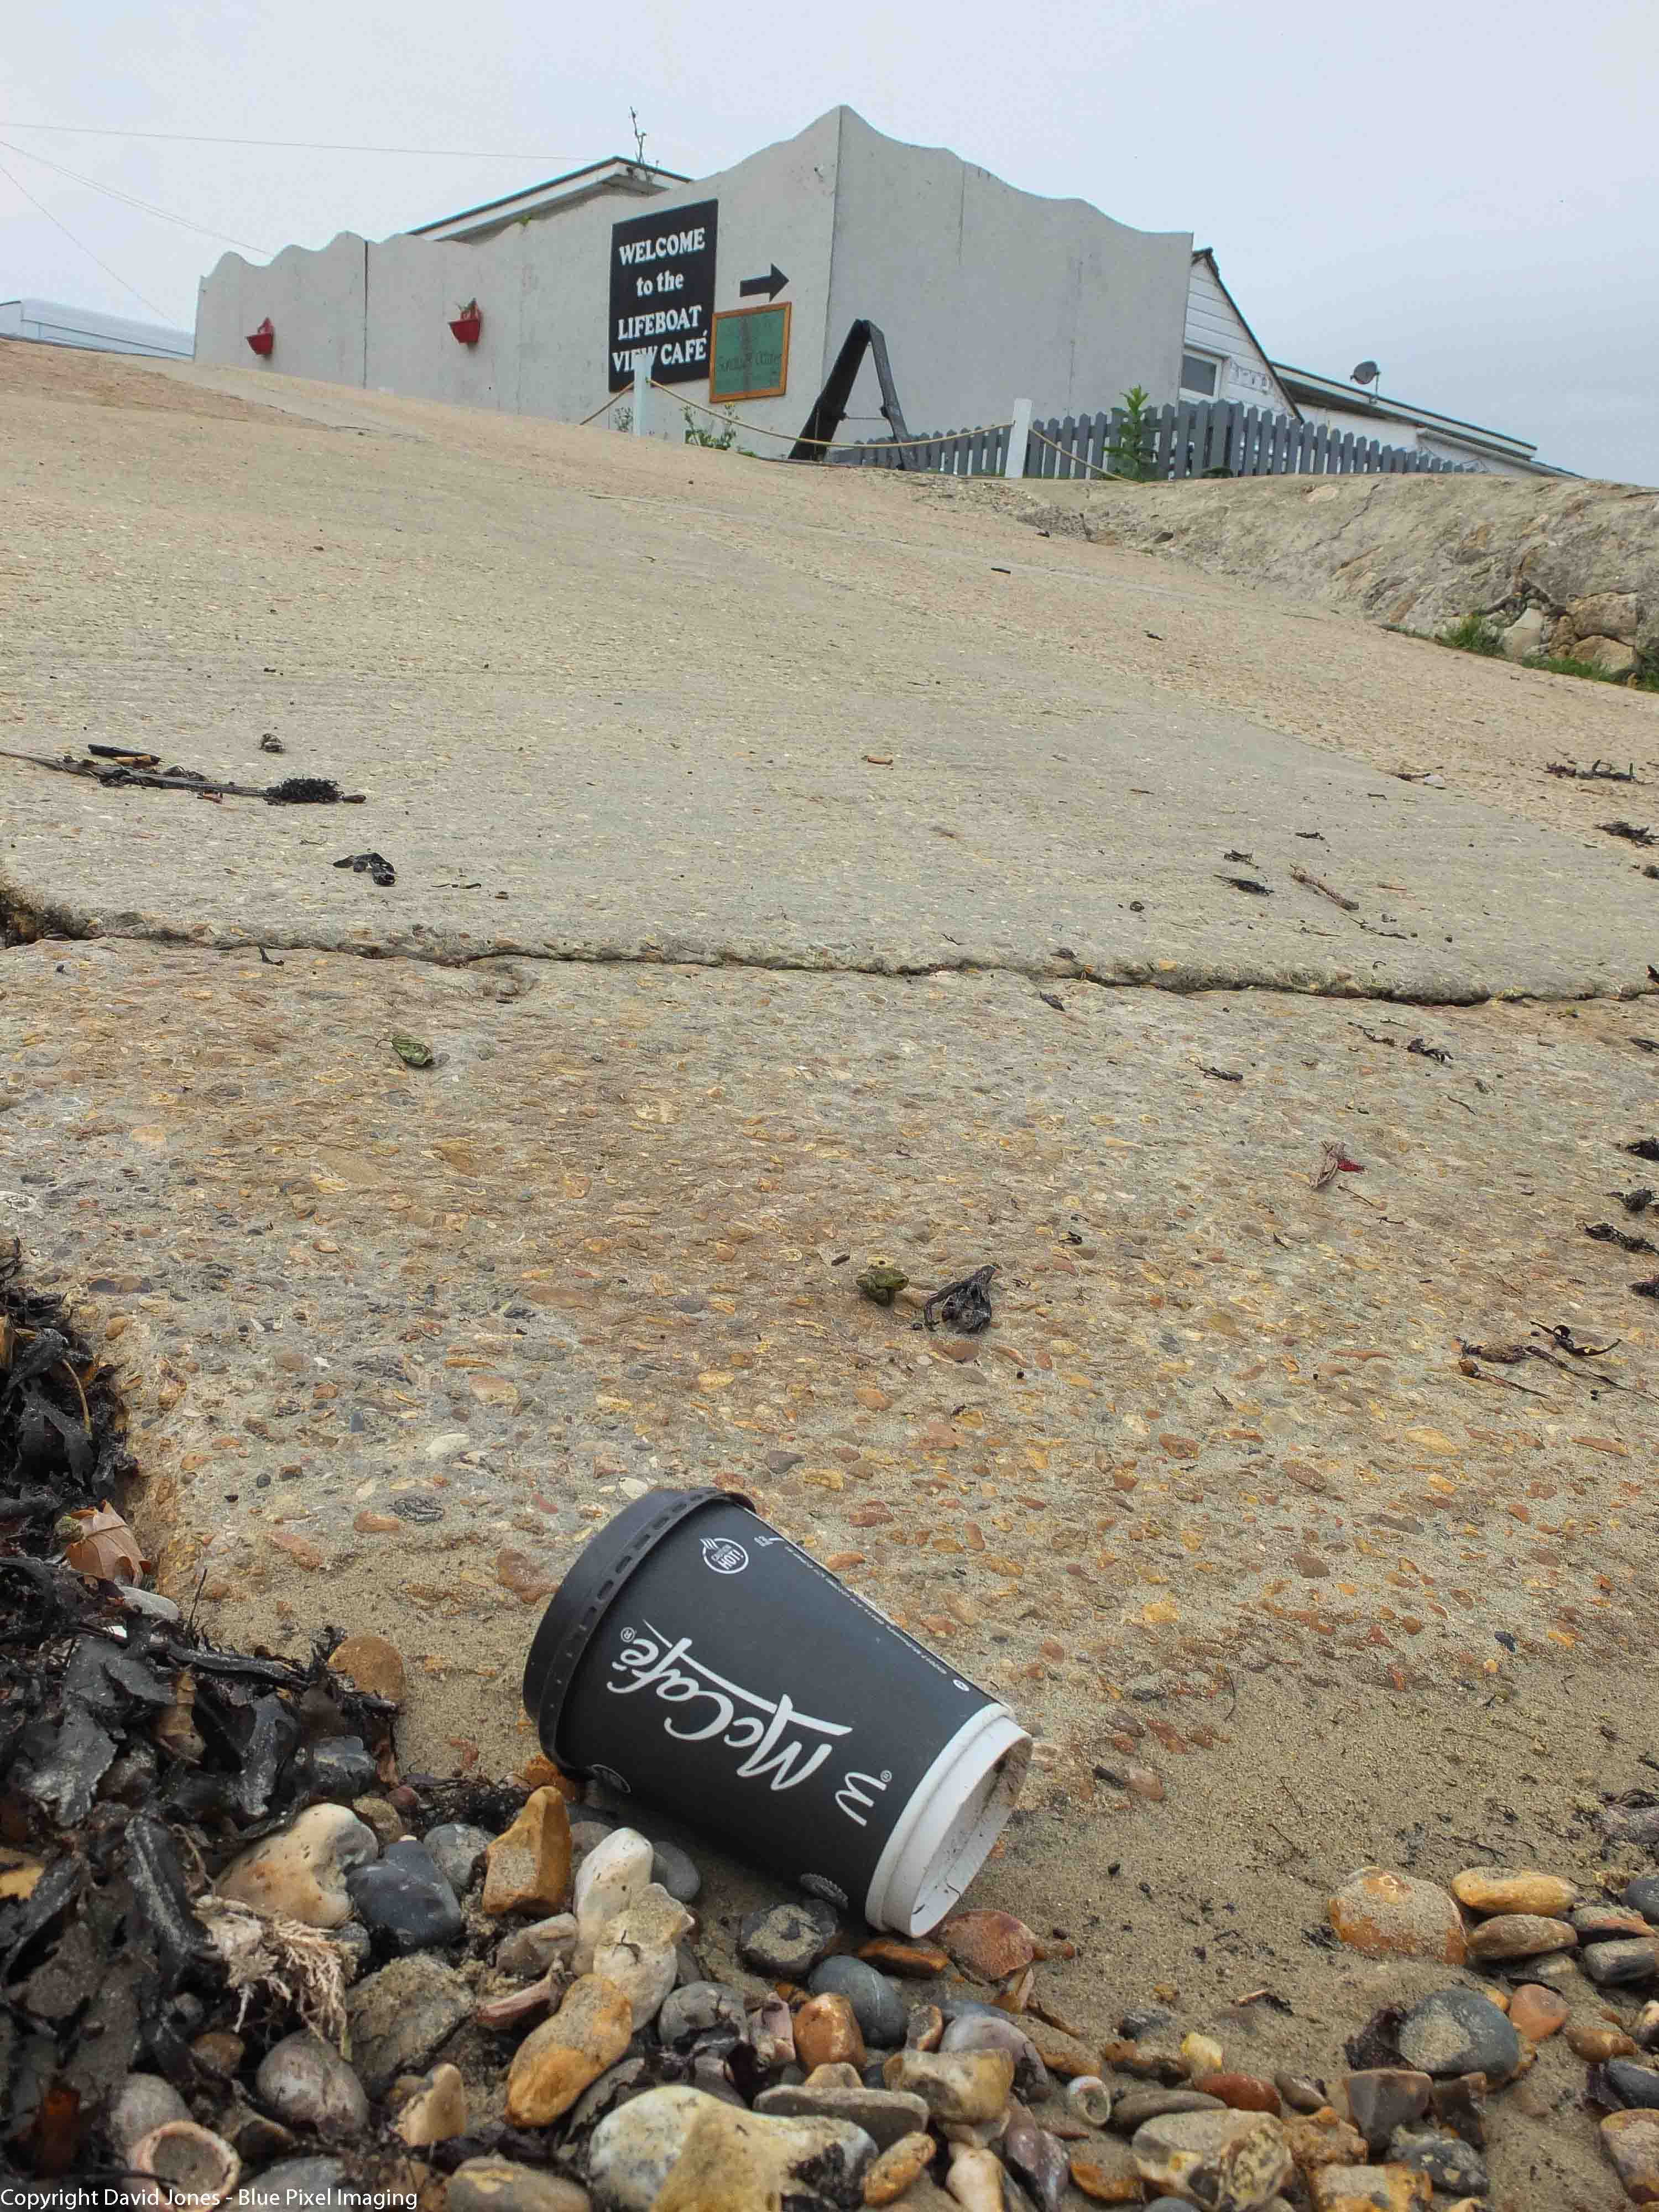 Another Coffee cup on the beach